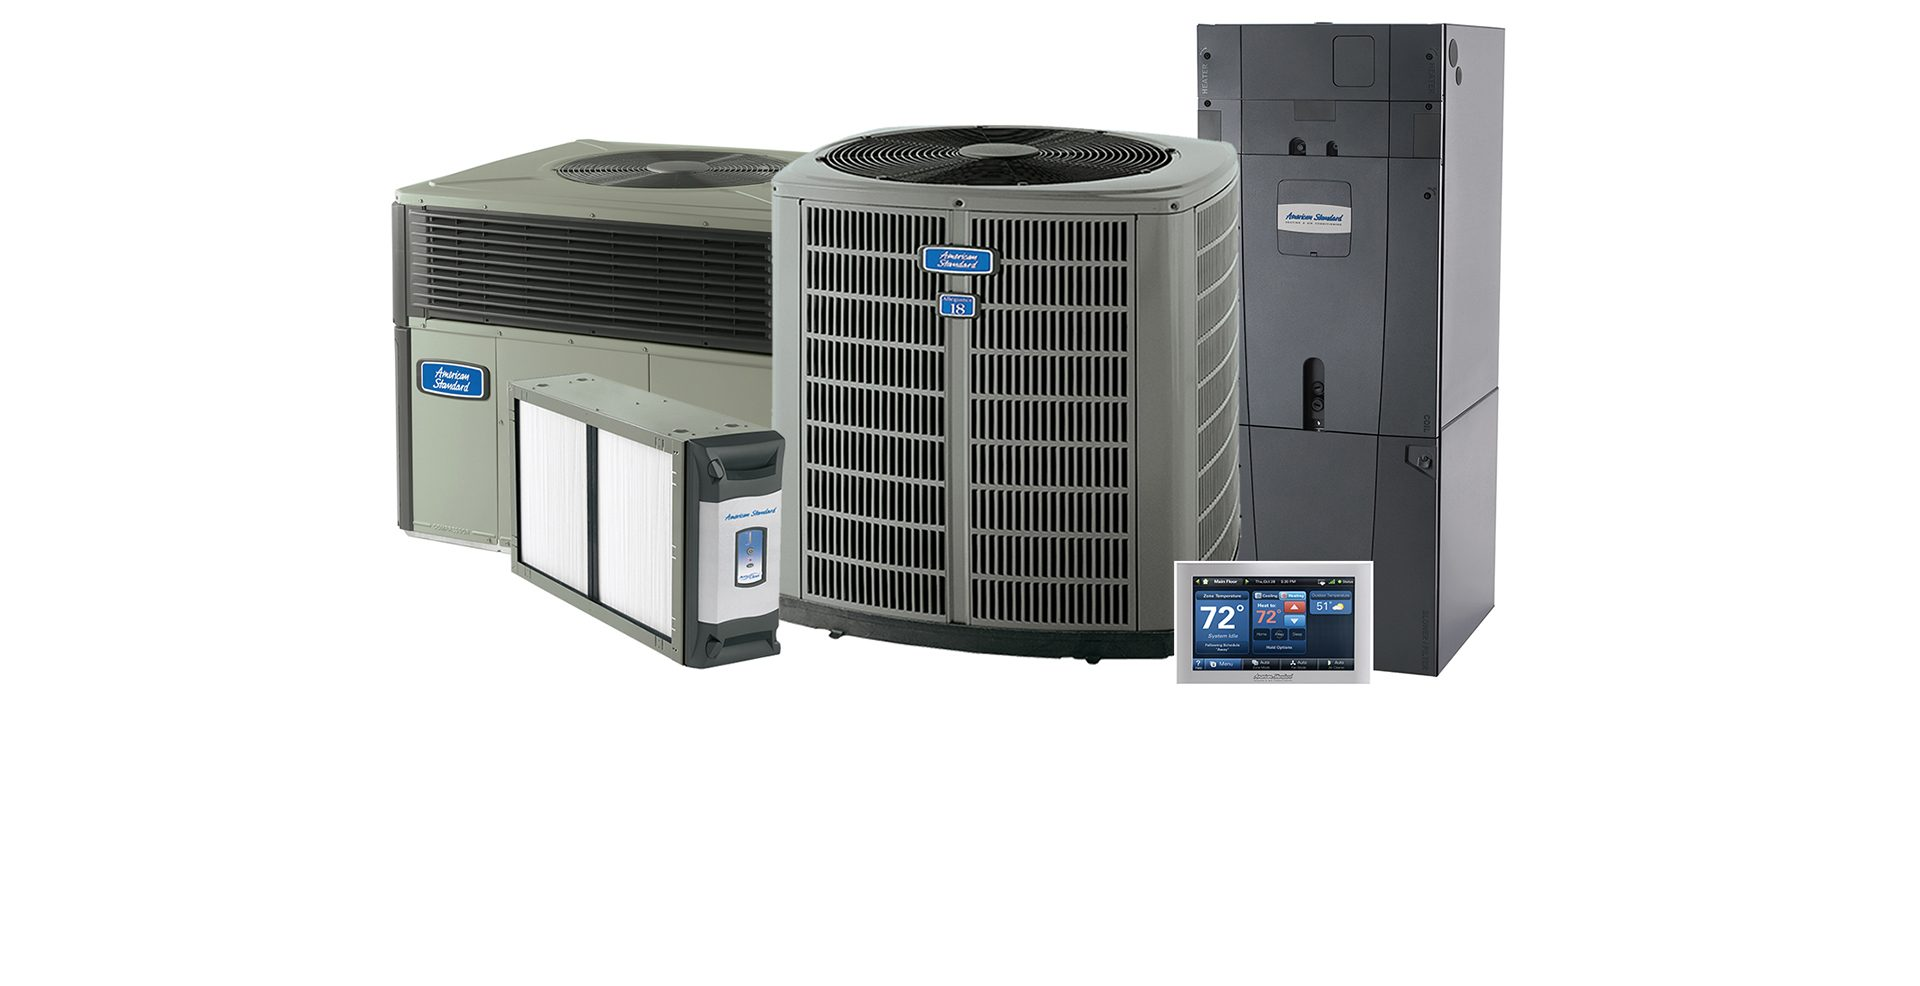 hight resolution of american standard brand of air conditioning equipment dealer hvac equipment family photo